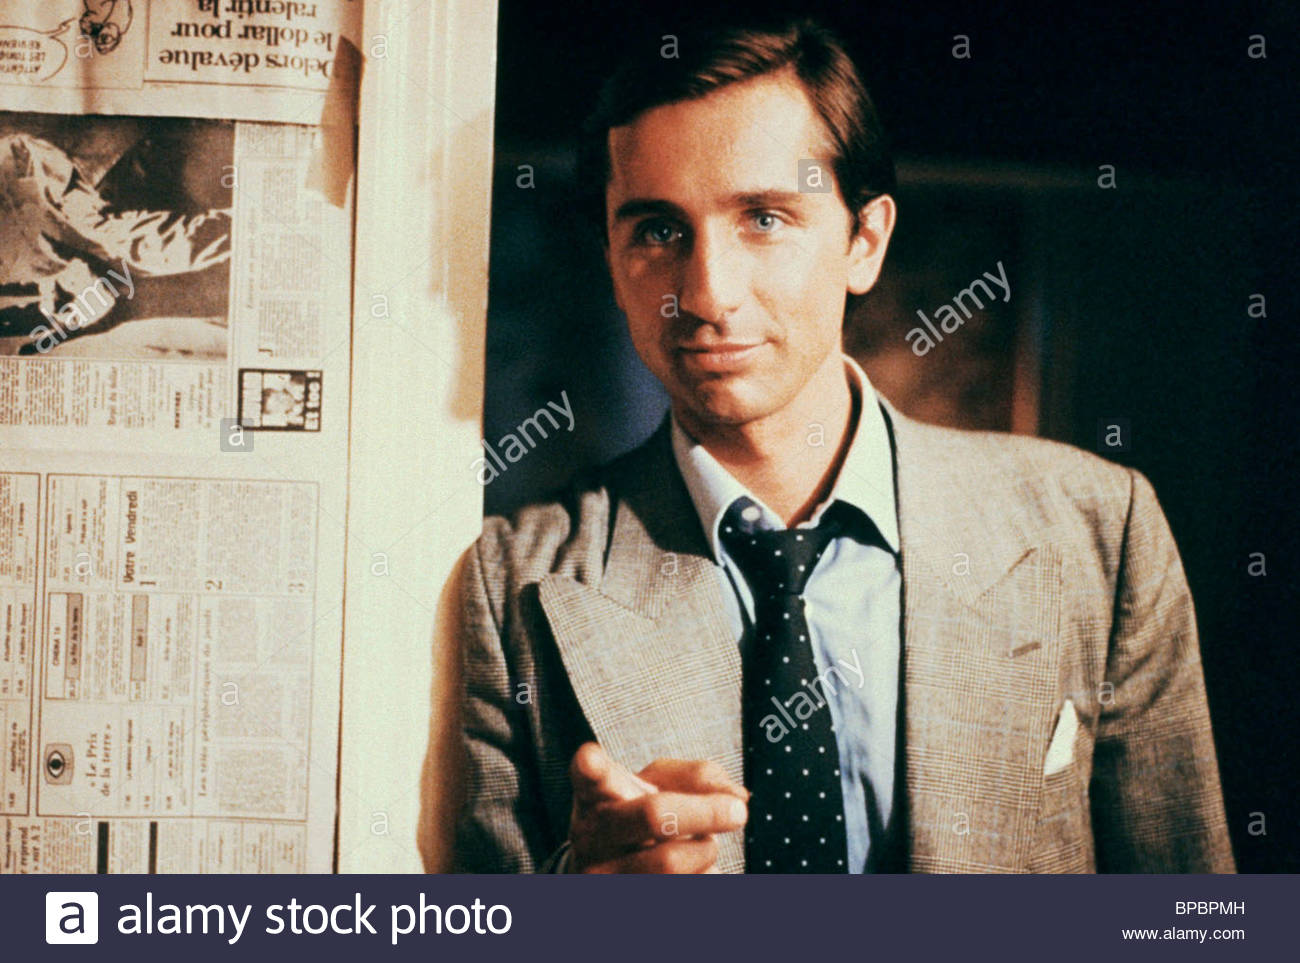 THIERRY LHERMITTE UNTIL SEPTEMBER (1984) - Stock Image